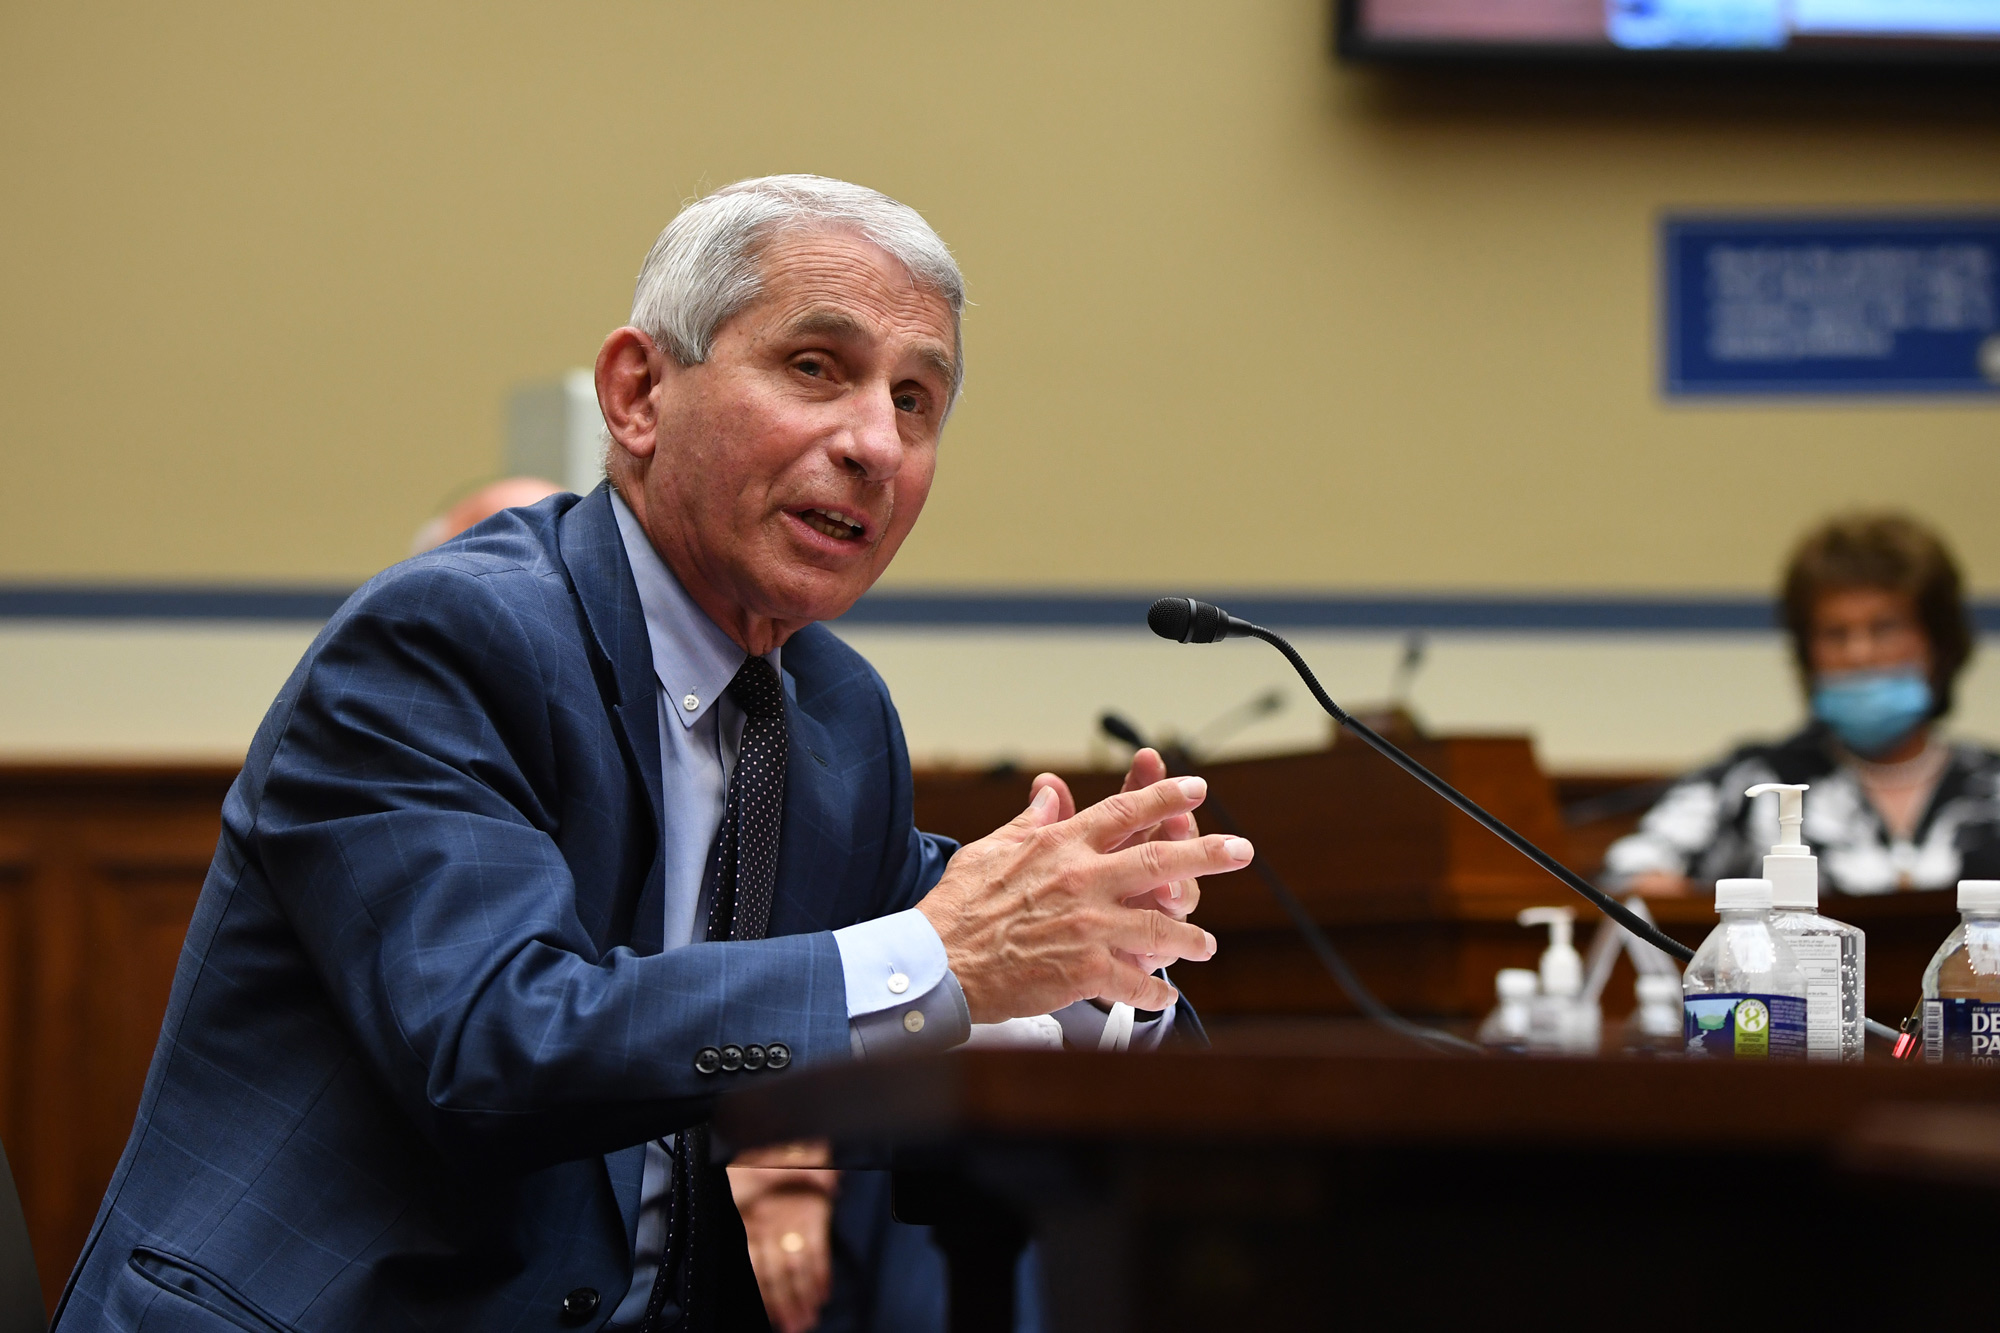 Dr. Anthony Fauci, director of the National Institute for Allergy and Infectious Diseases, testifies before a House Subcommittee hearing on July 31 in Washington, DC.